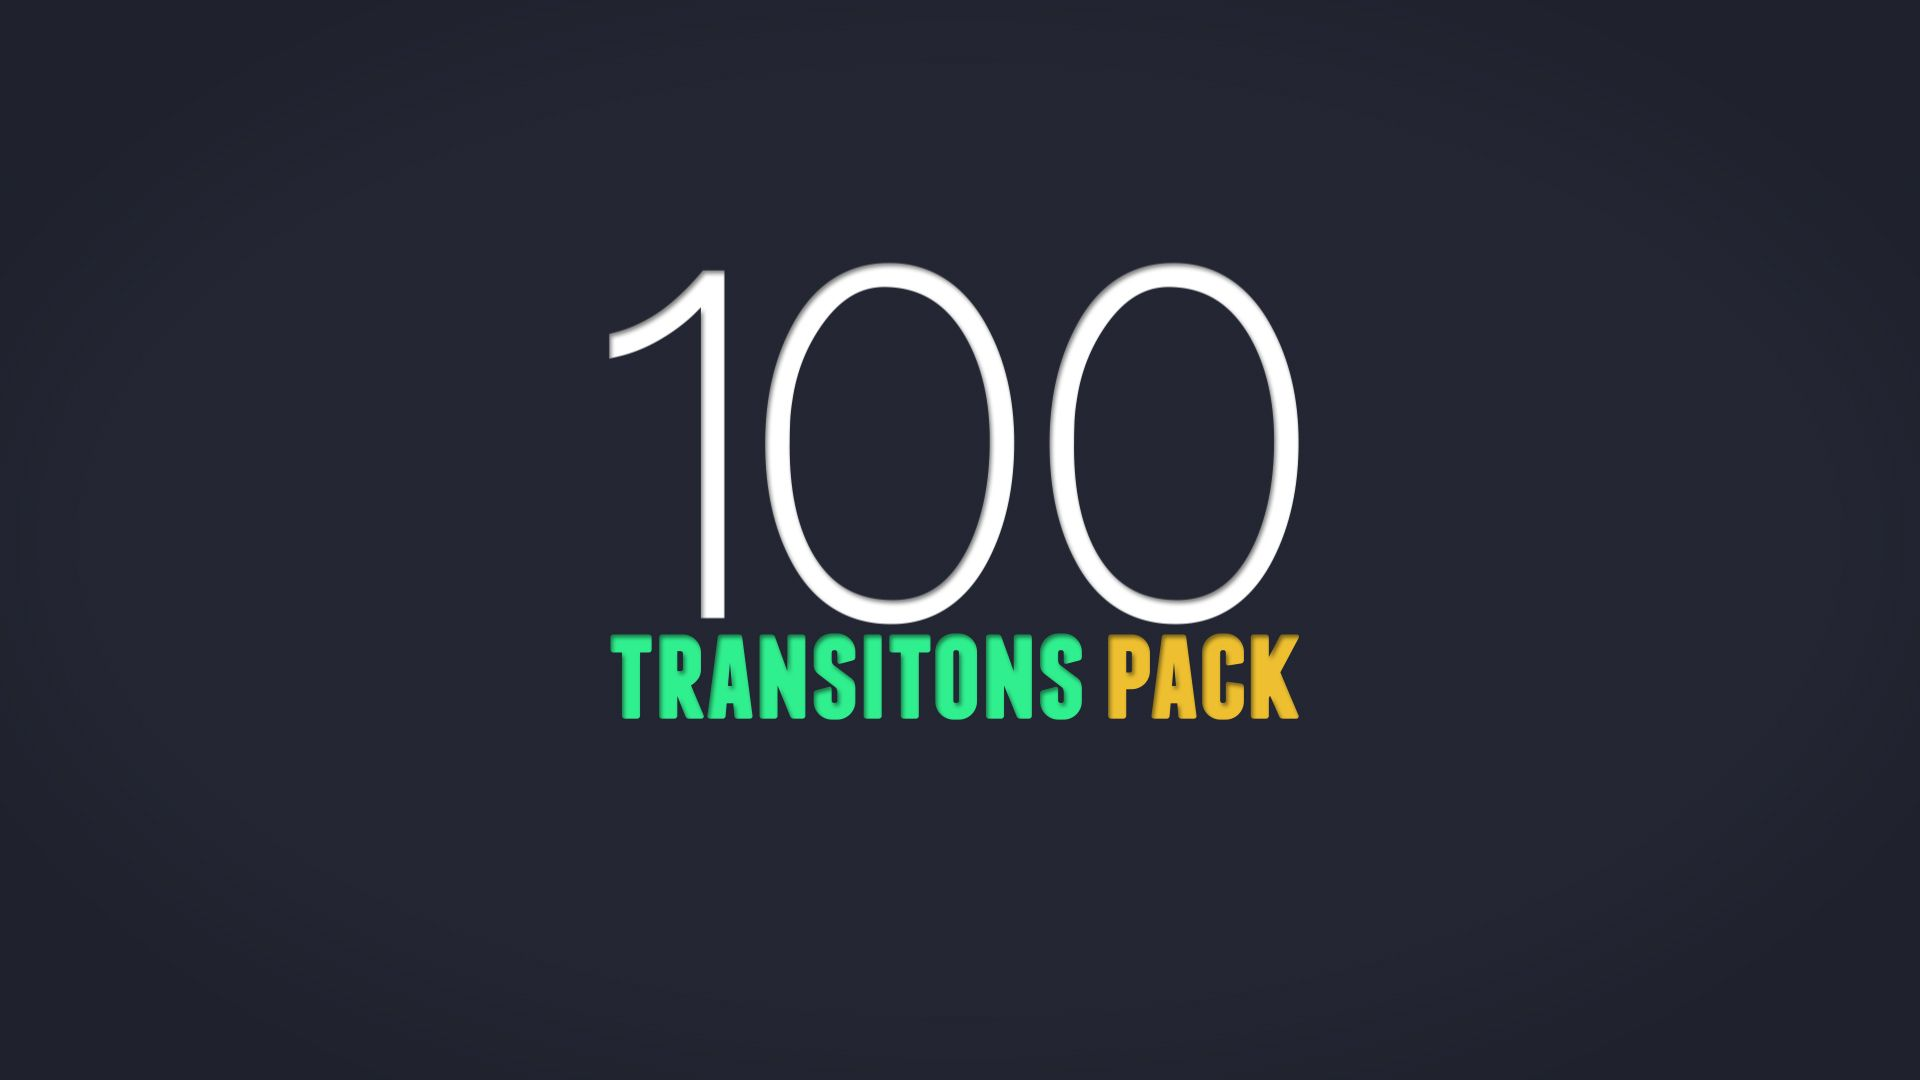 100 animated transitions pack for after effects template adobe